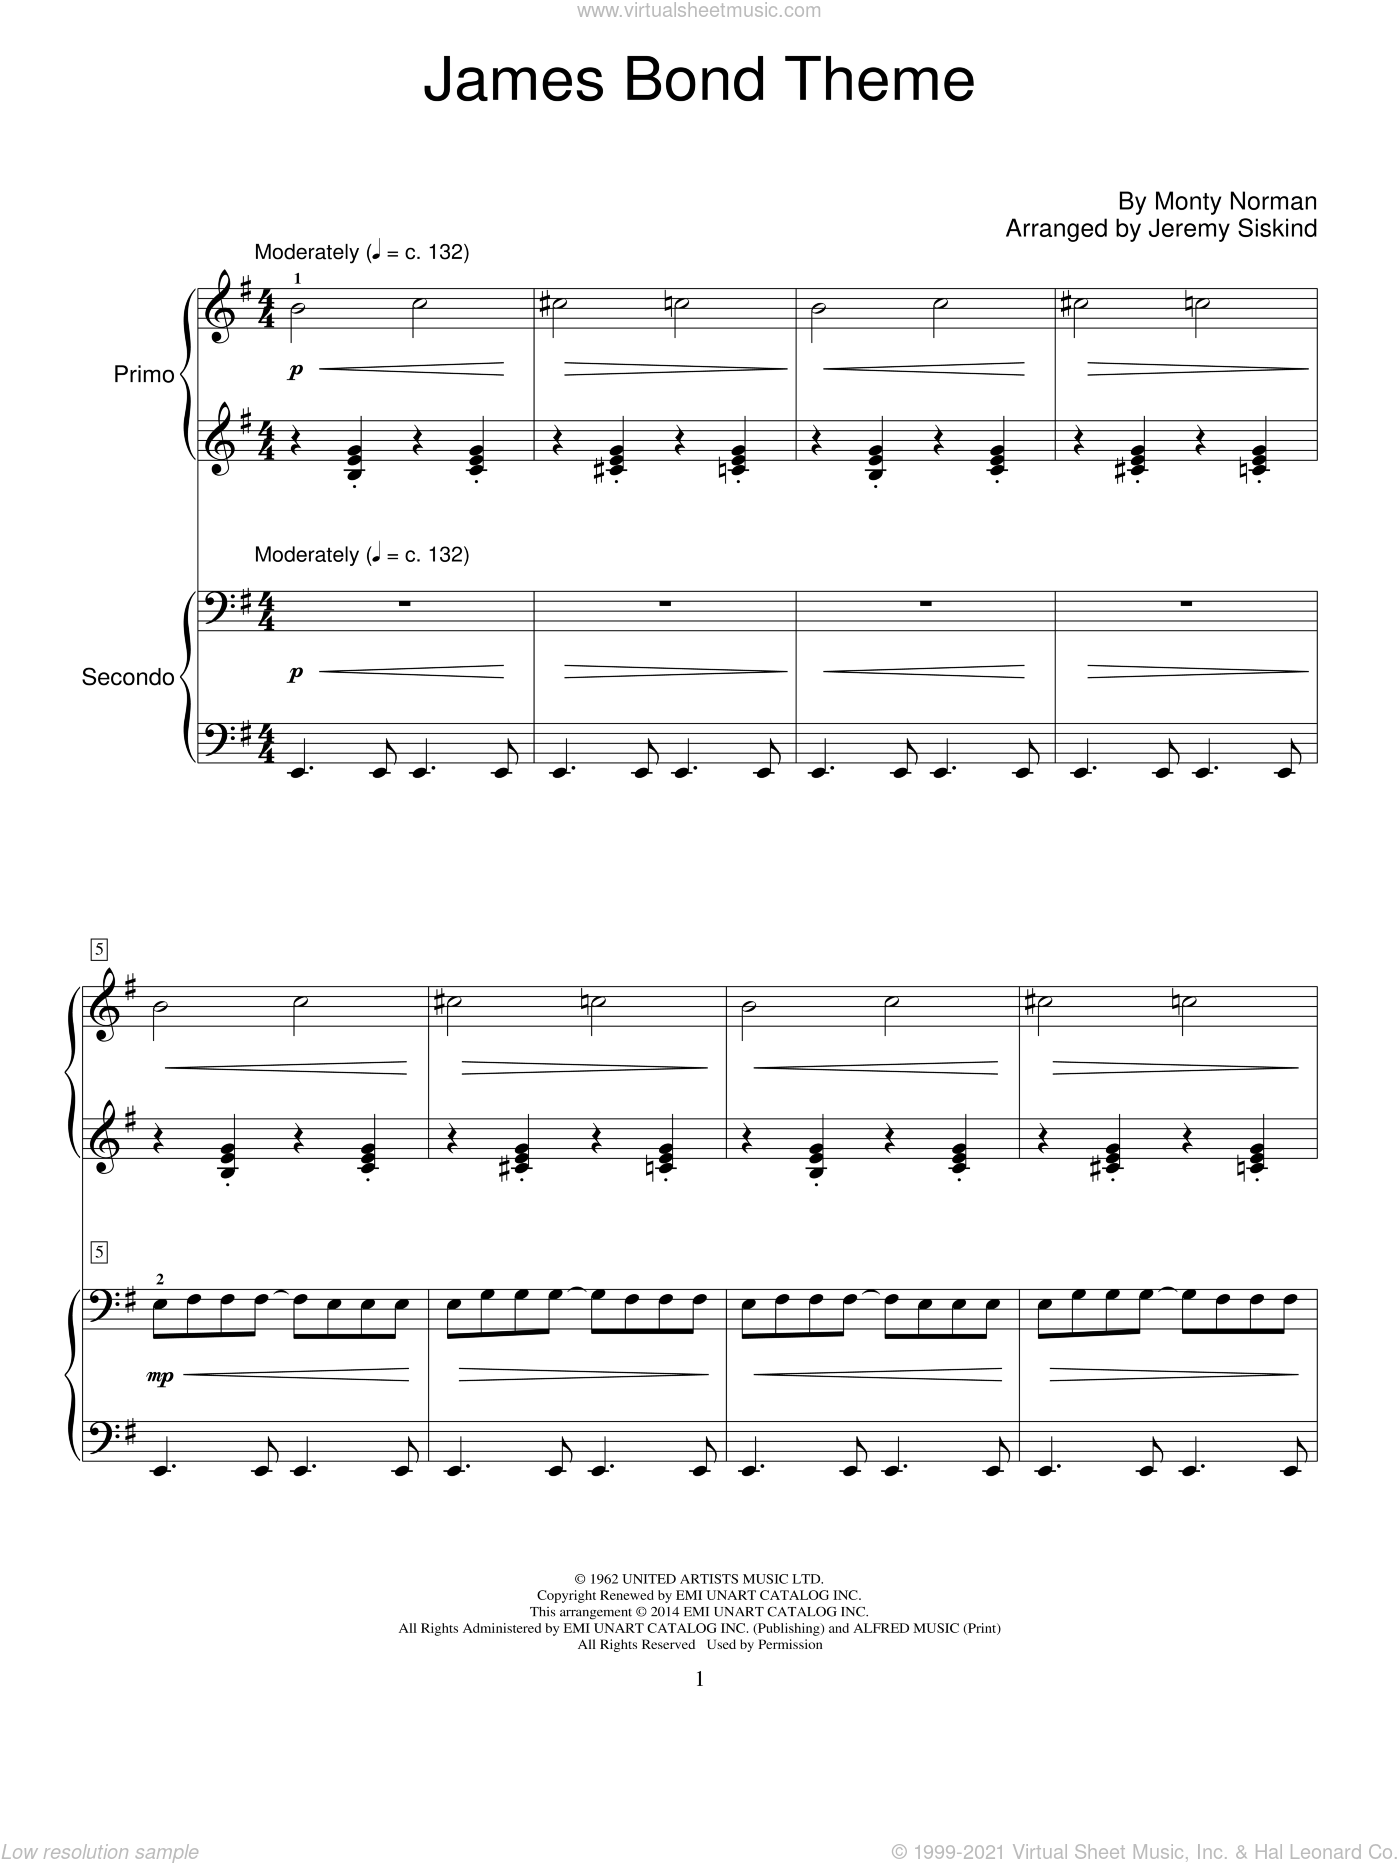 James Bond Theme sheet music for piano four hands (duets) by Monty Norman